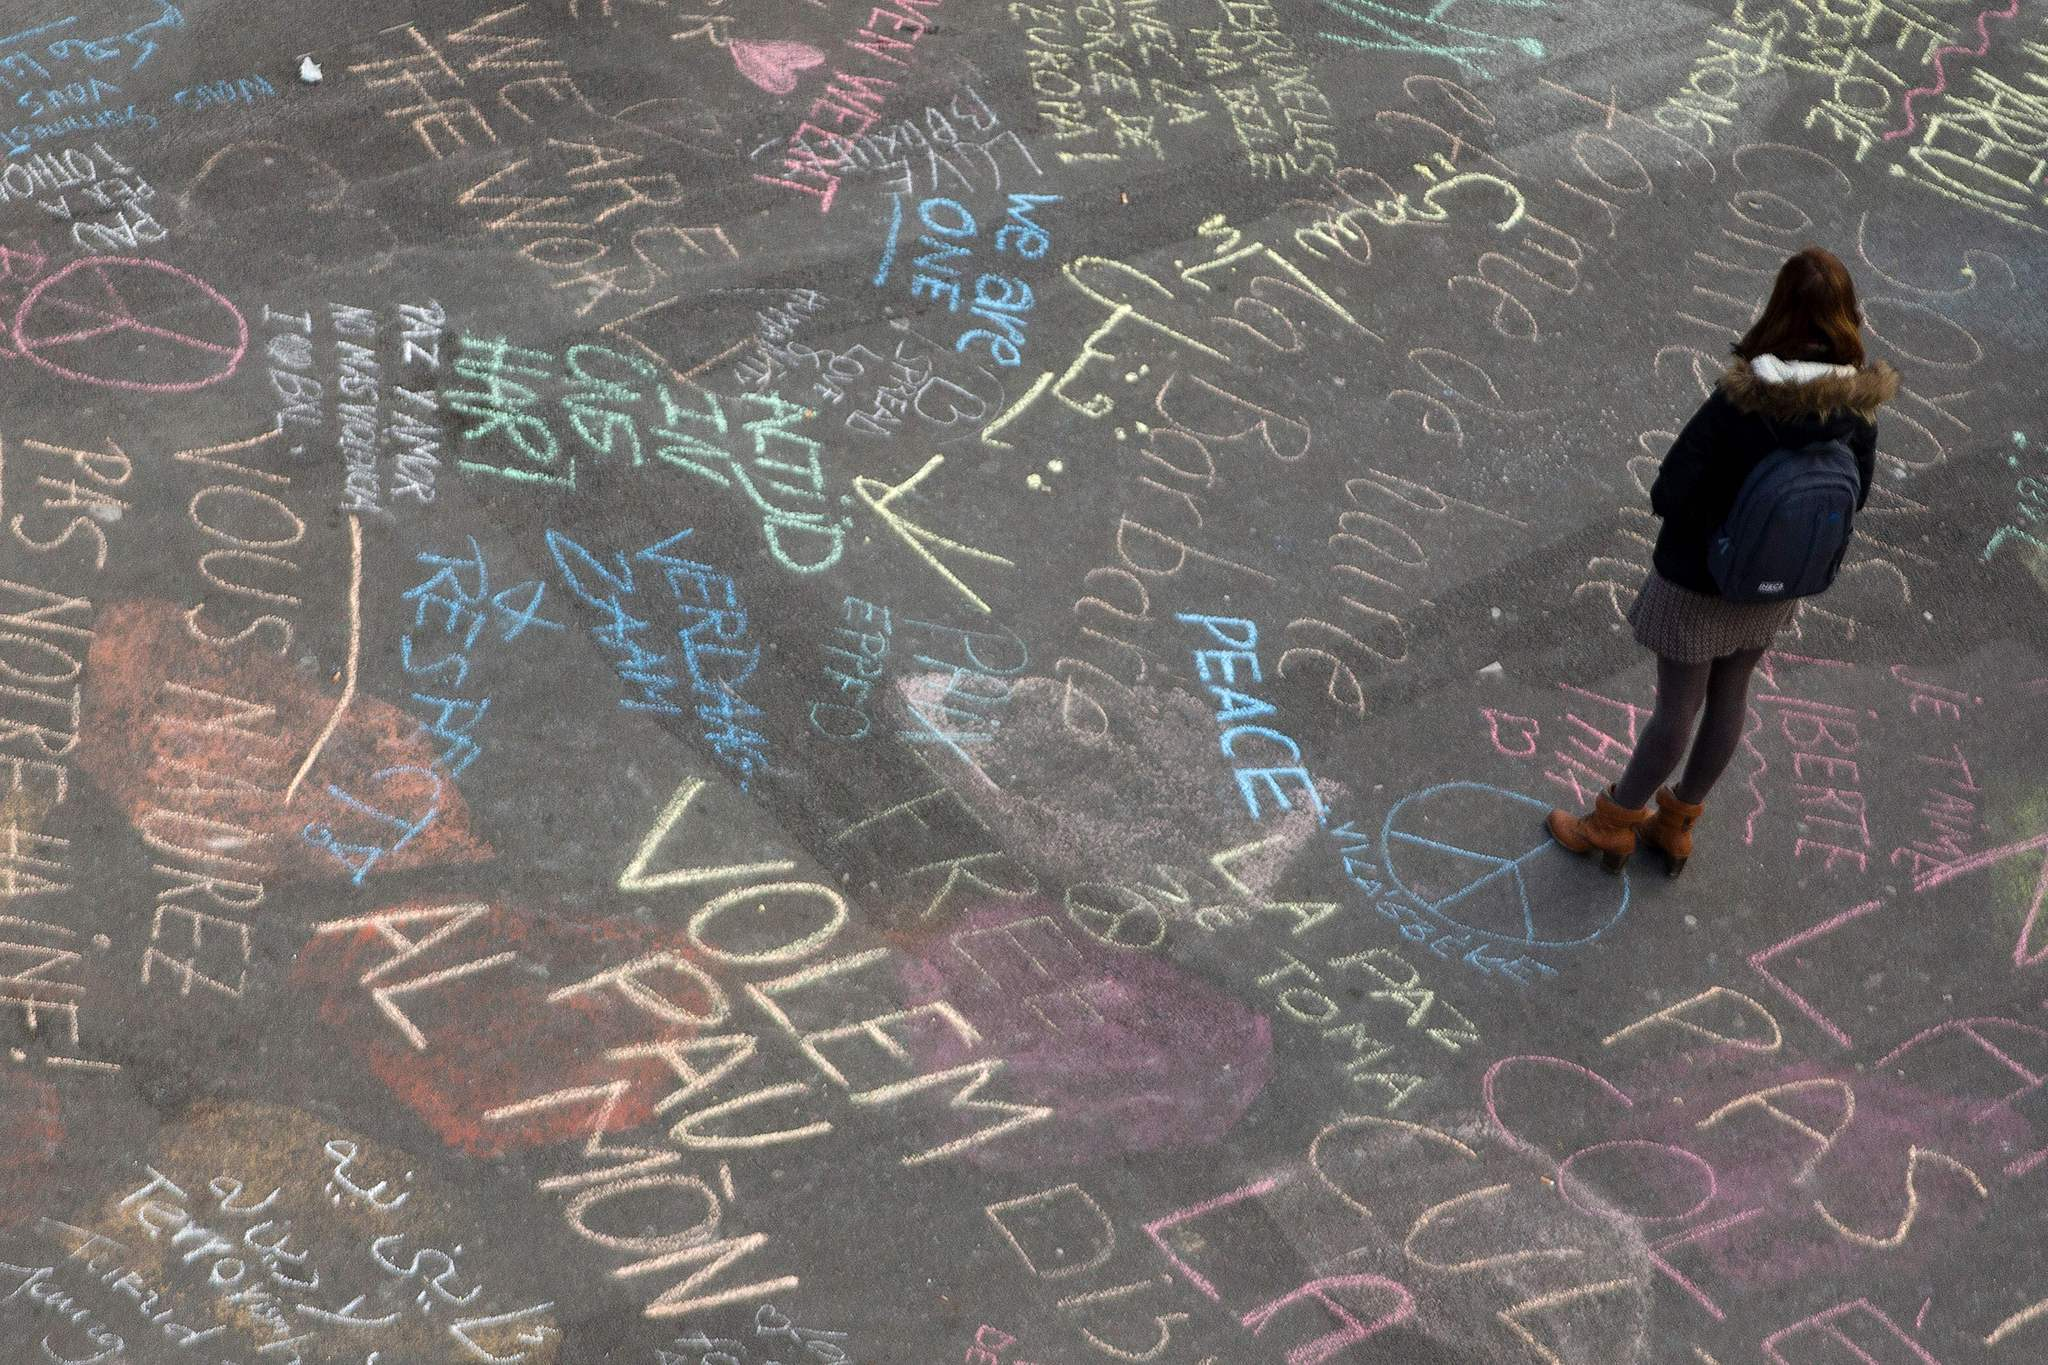 A woman reads messages written on the ground at a makeshift memorial on Place de la Bourse following attacks in Brussels.